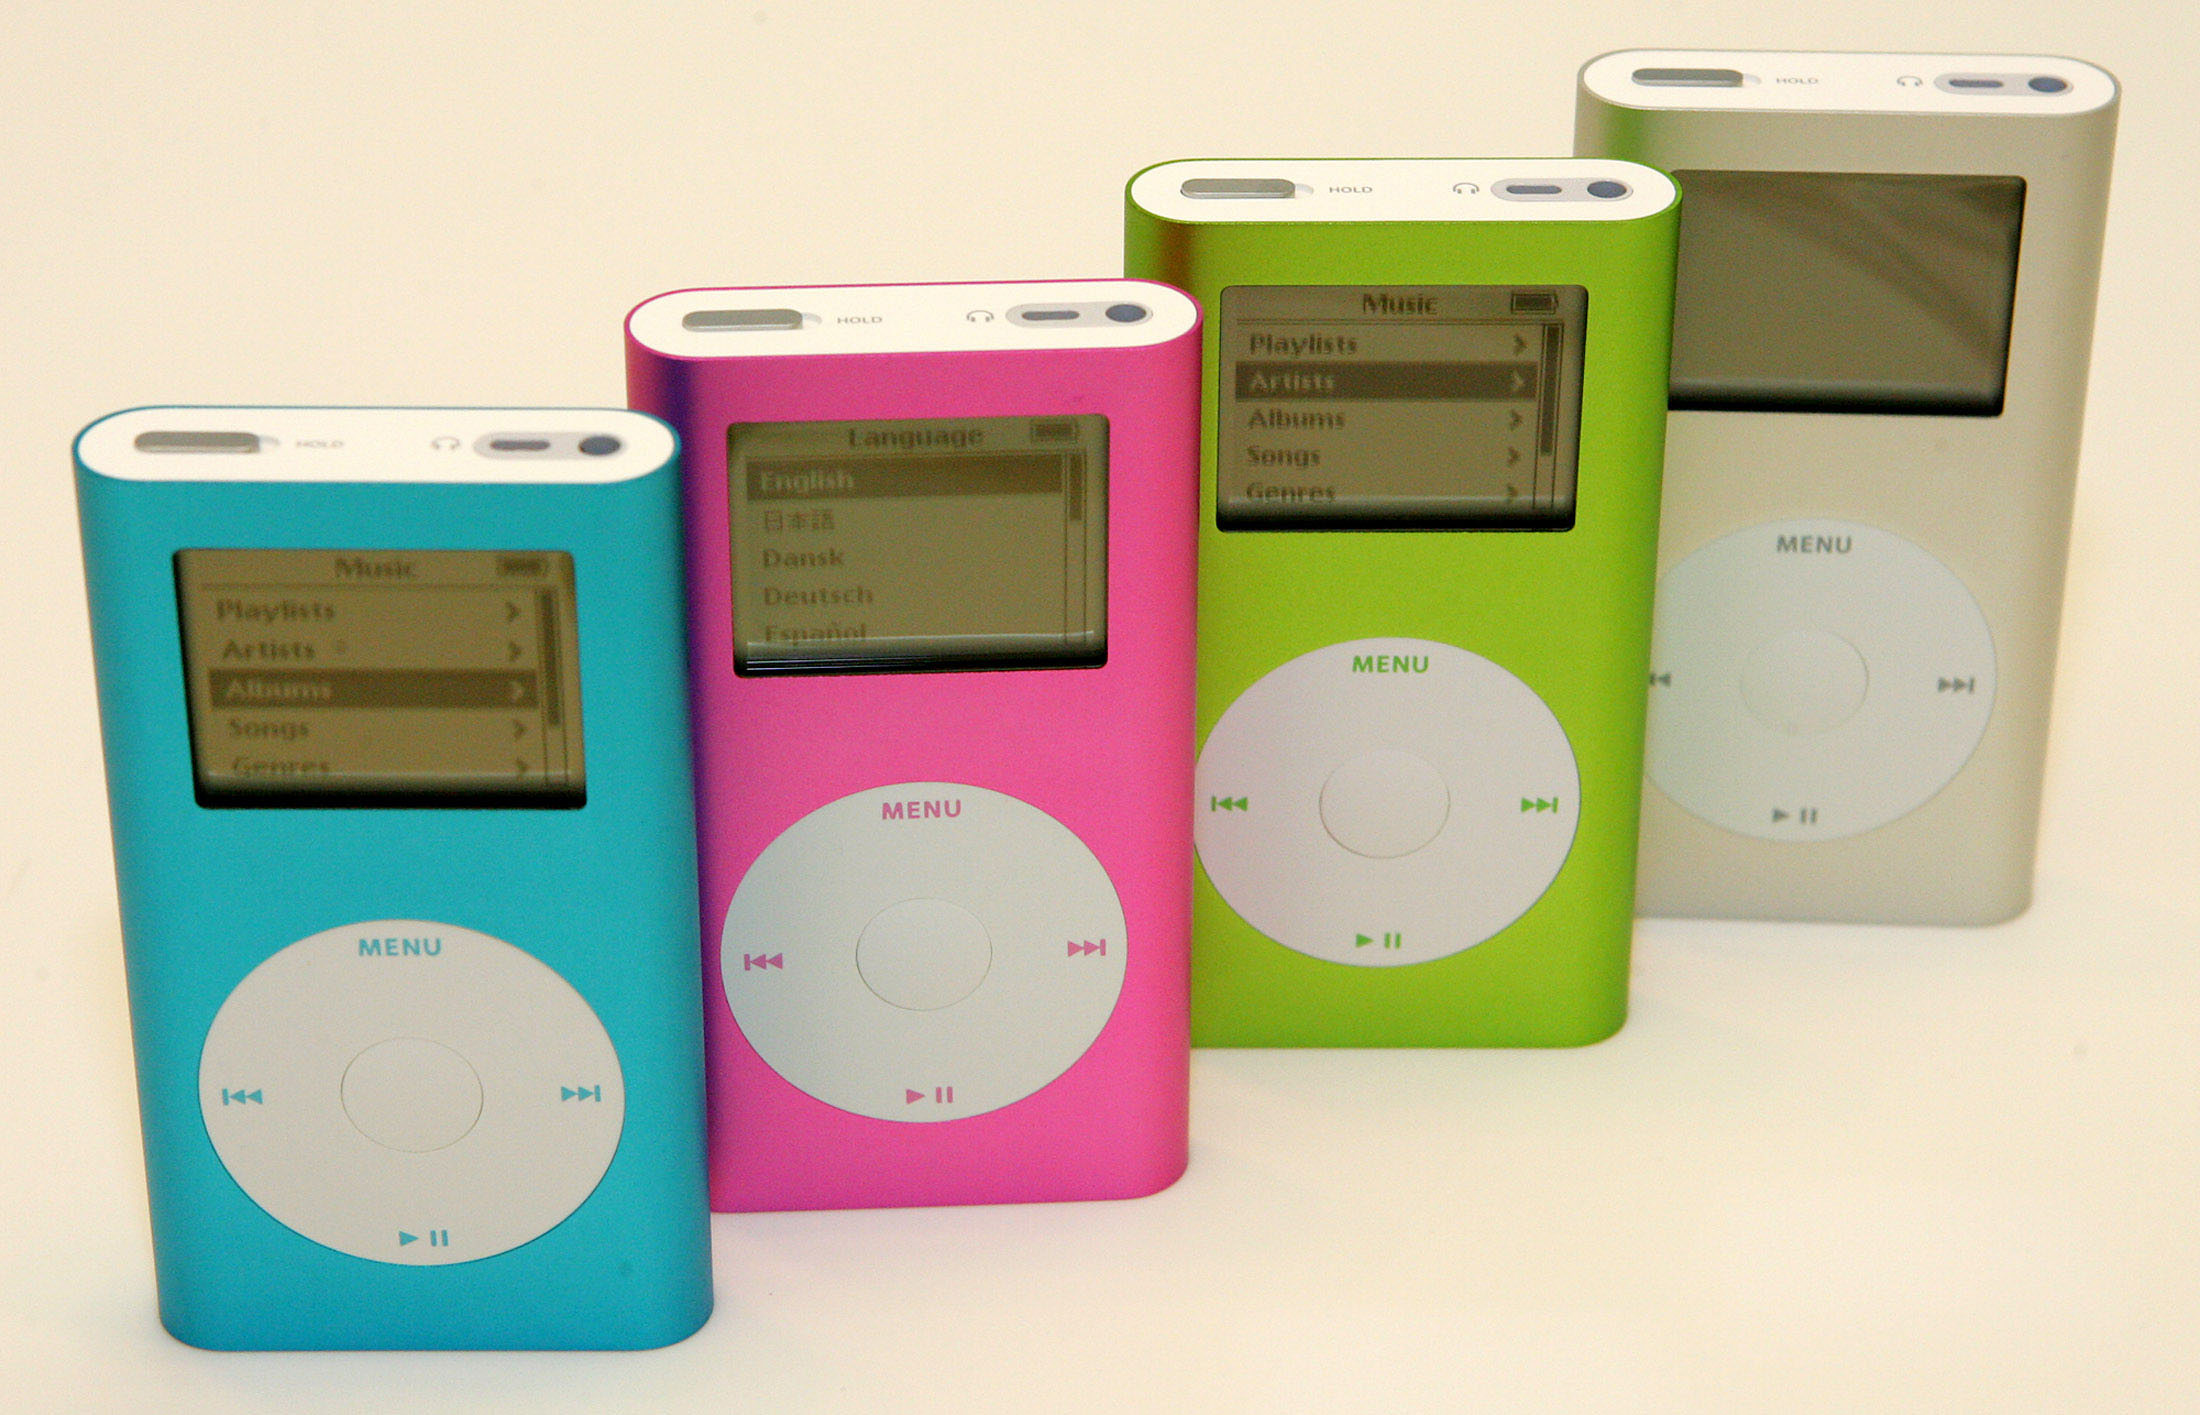 <div class='meta'><div class='origin-logo' data-origin='AP'></div><span class='caption-text' data-credit='AP Photo/Marcio Jose Sanchez'>Apple's new line of iPod minis ae seen at the Apple Store in Palo Alto, Calif. on Wednesday, Feb. 23, 2005.</span></div>